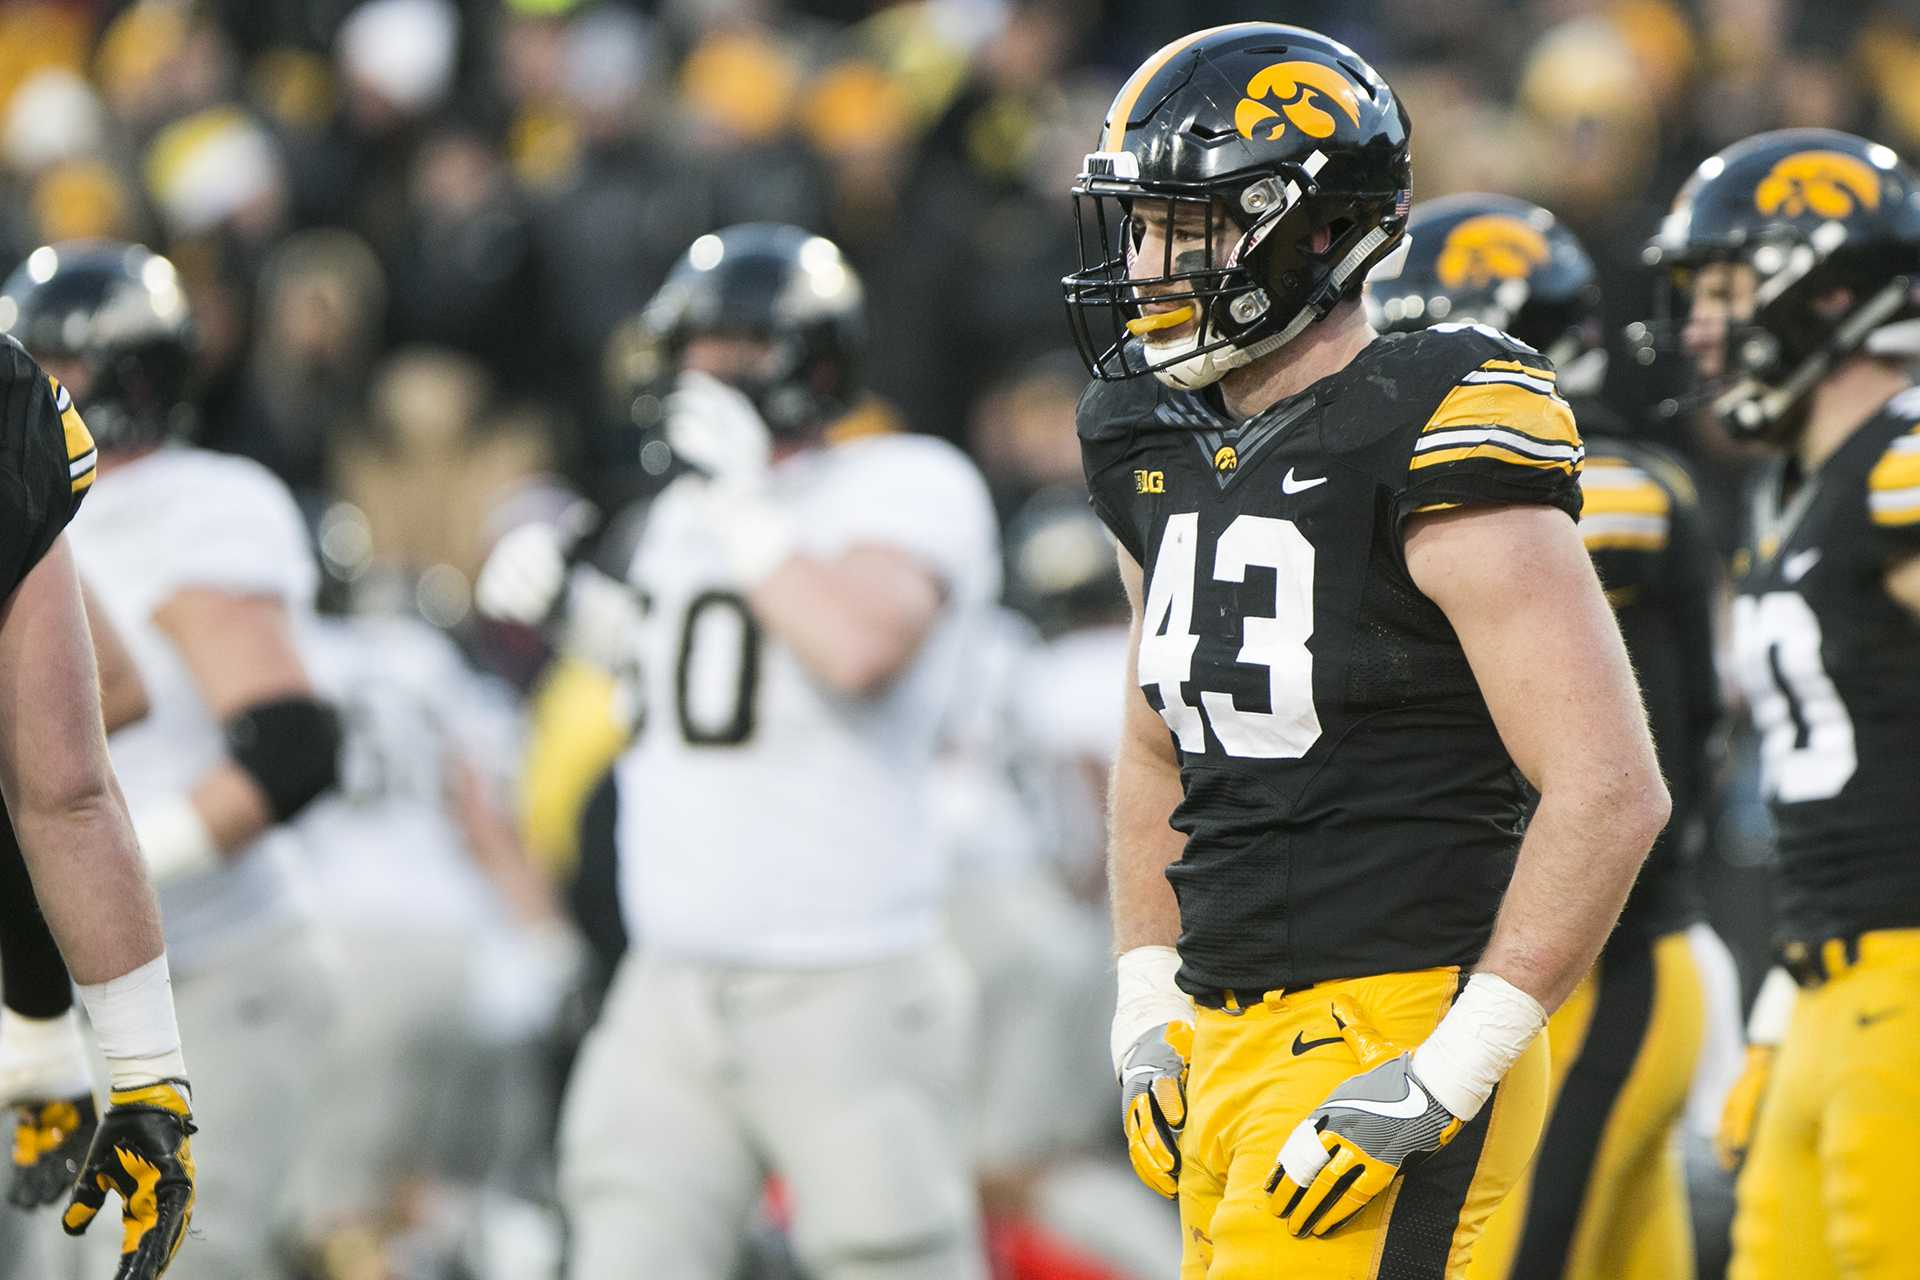 Iowa linebacker Josey Jewell reacts during the Iowa/Purdue football game in Kinnick Stadium on Saturday, Nov. 18, 2017. The Boilermakers defeated the Hawkeyes, 24-15. (Joseph Cress/The Daily Iowan)